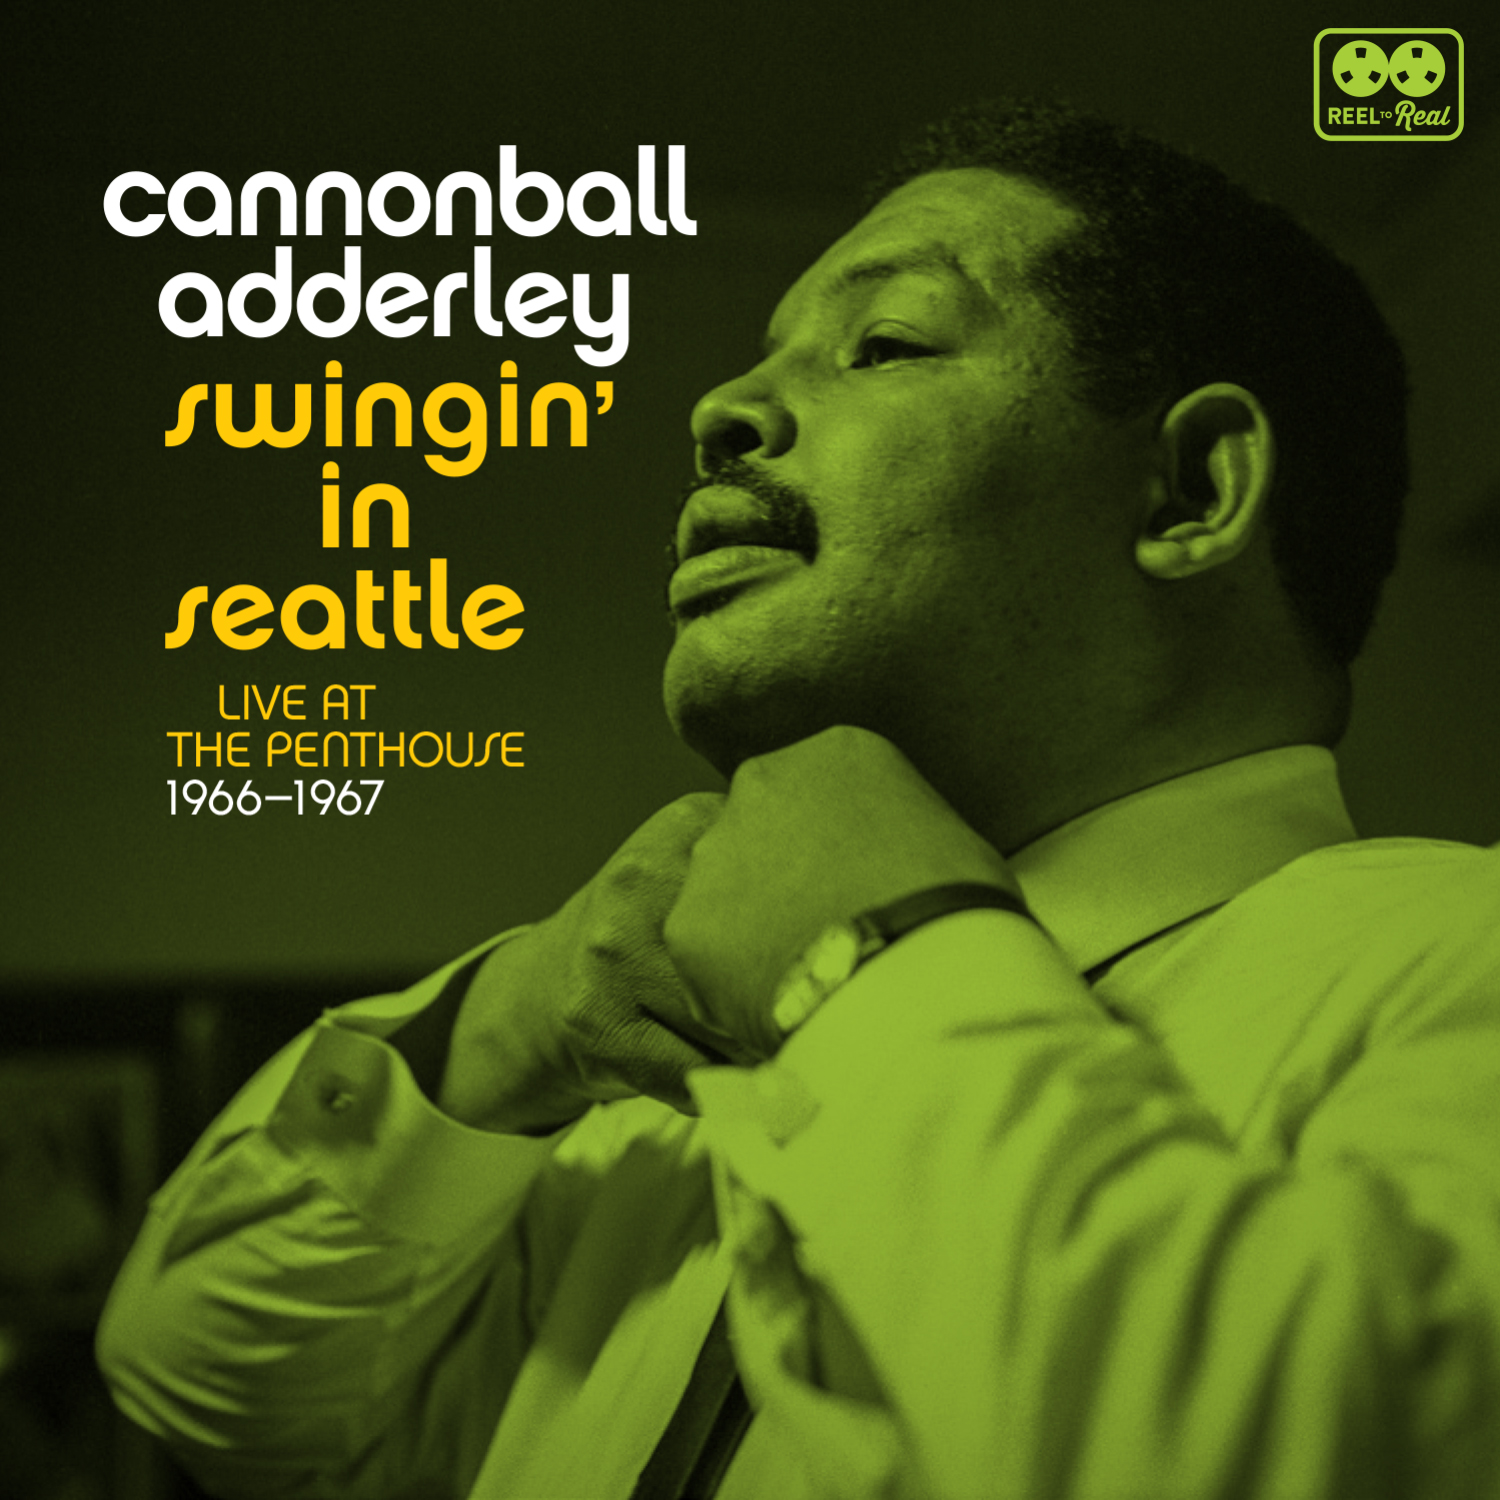 Cannonball Adderley - Swingin' in Seattle: Live at the Penthouse (1966-1967)